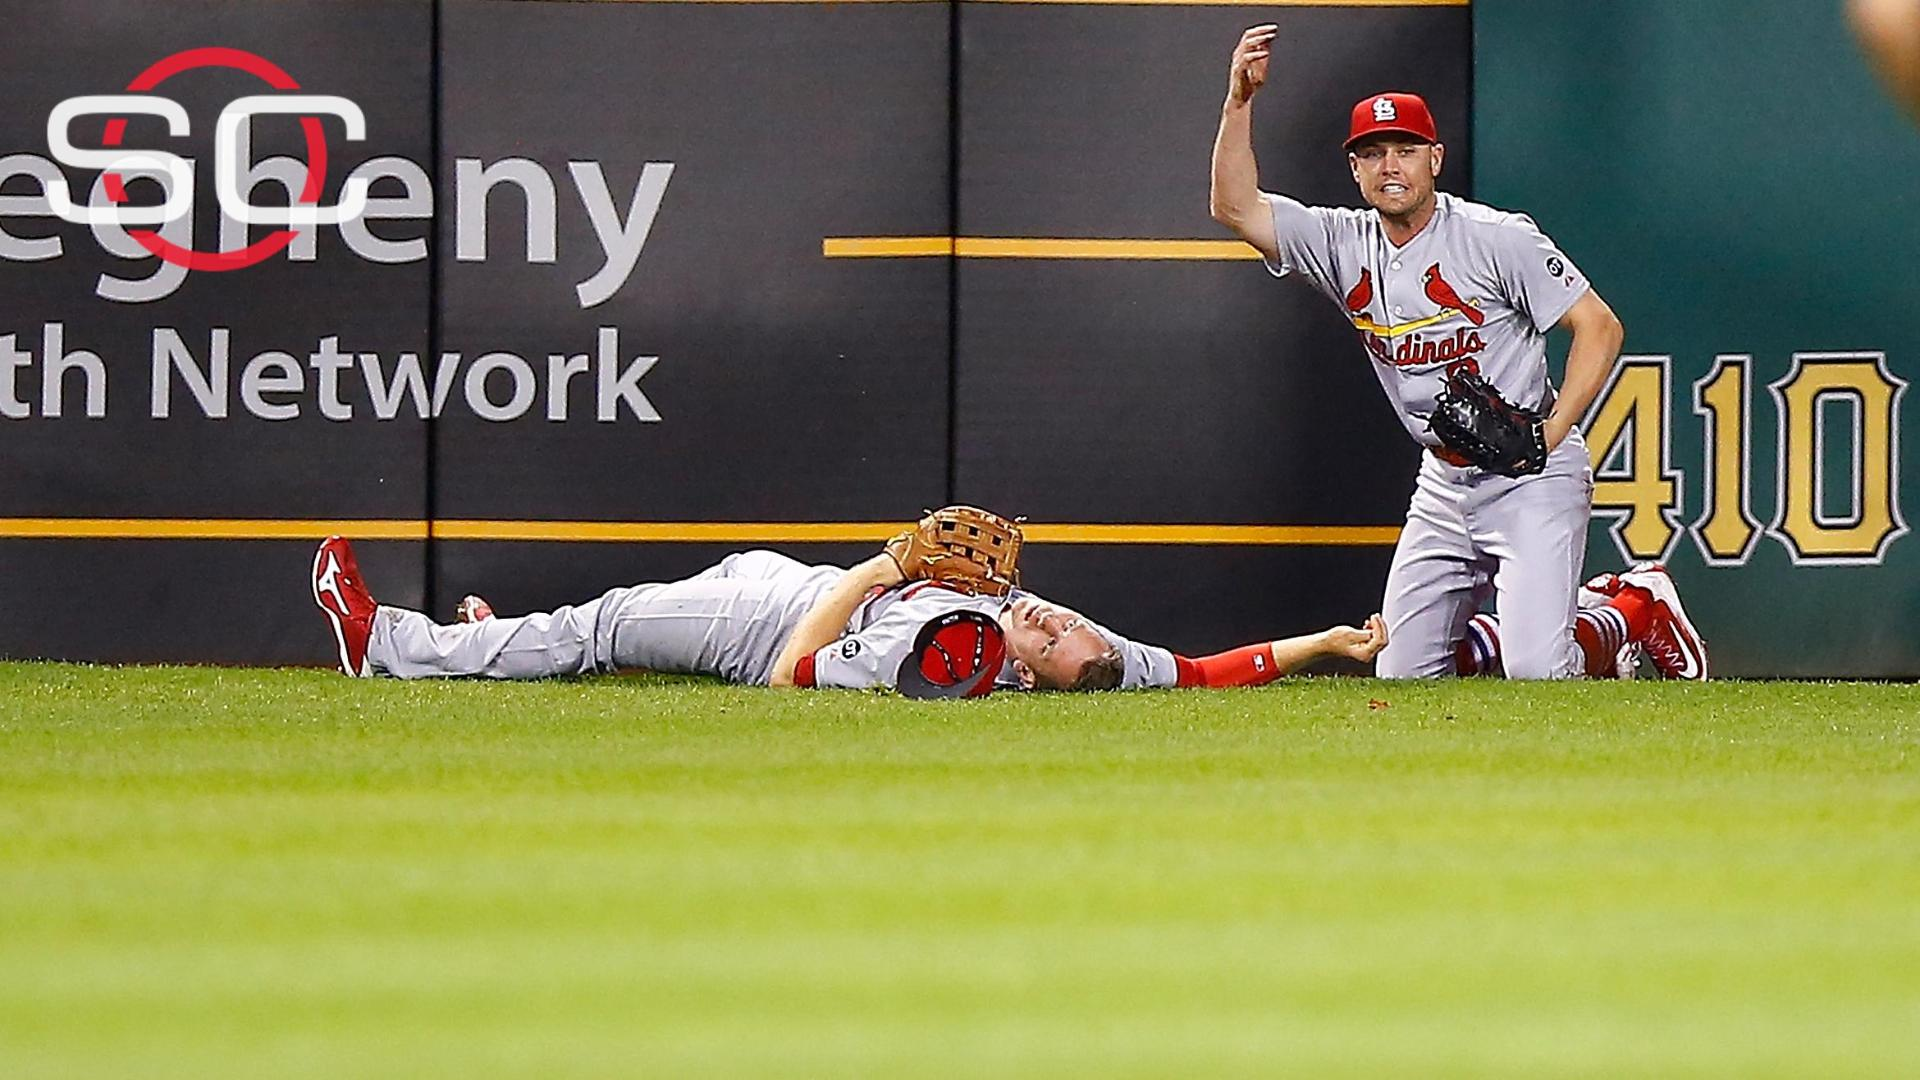 http://a.espncdn.com/media/motion/2015/0929/dm_150929_mlb_wedge_piscotty_injury969/dm_150929_mlb_wedge_piscotty_injury969.jpg